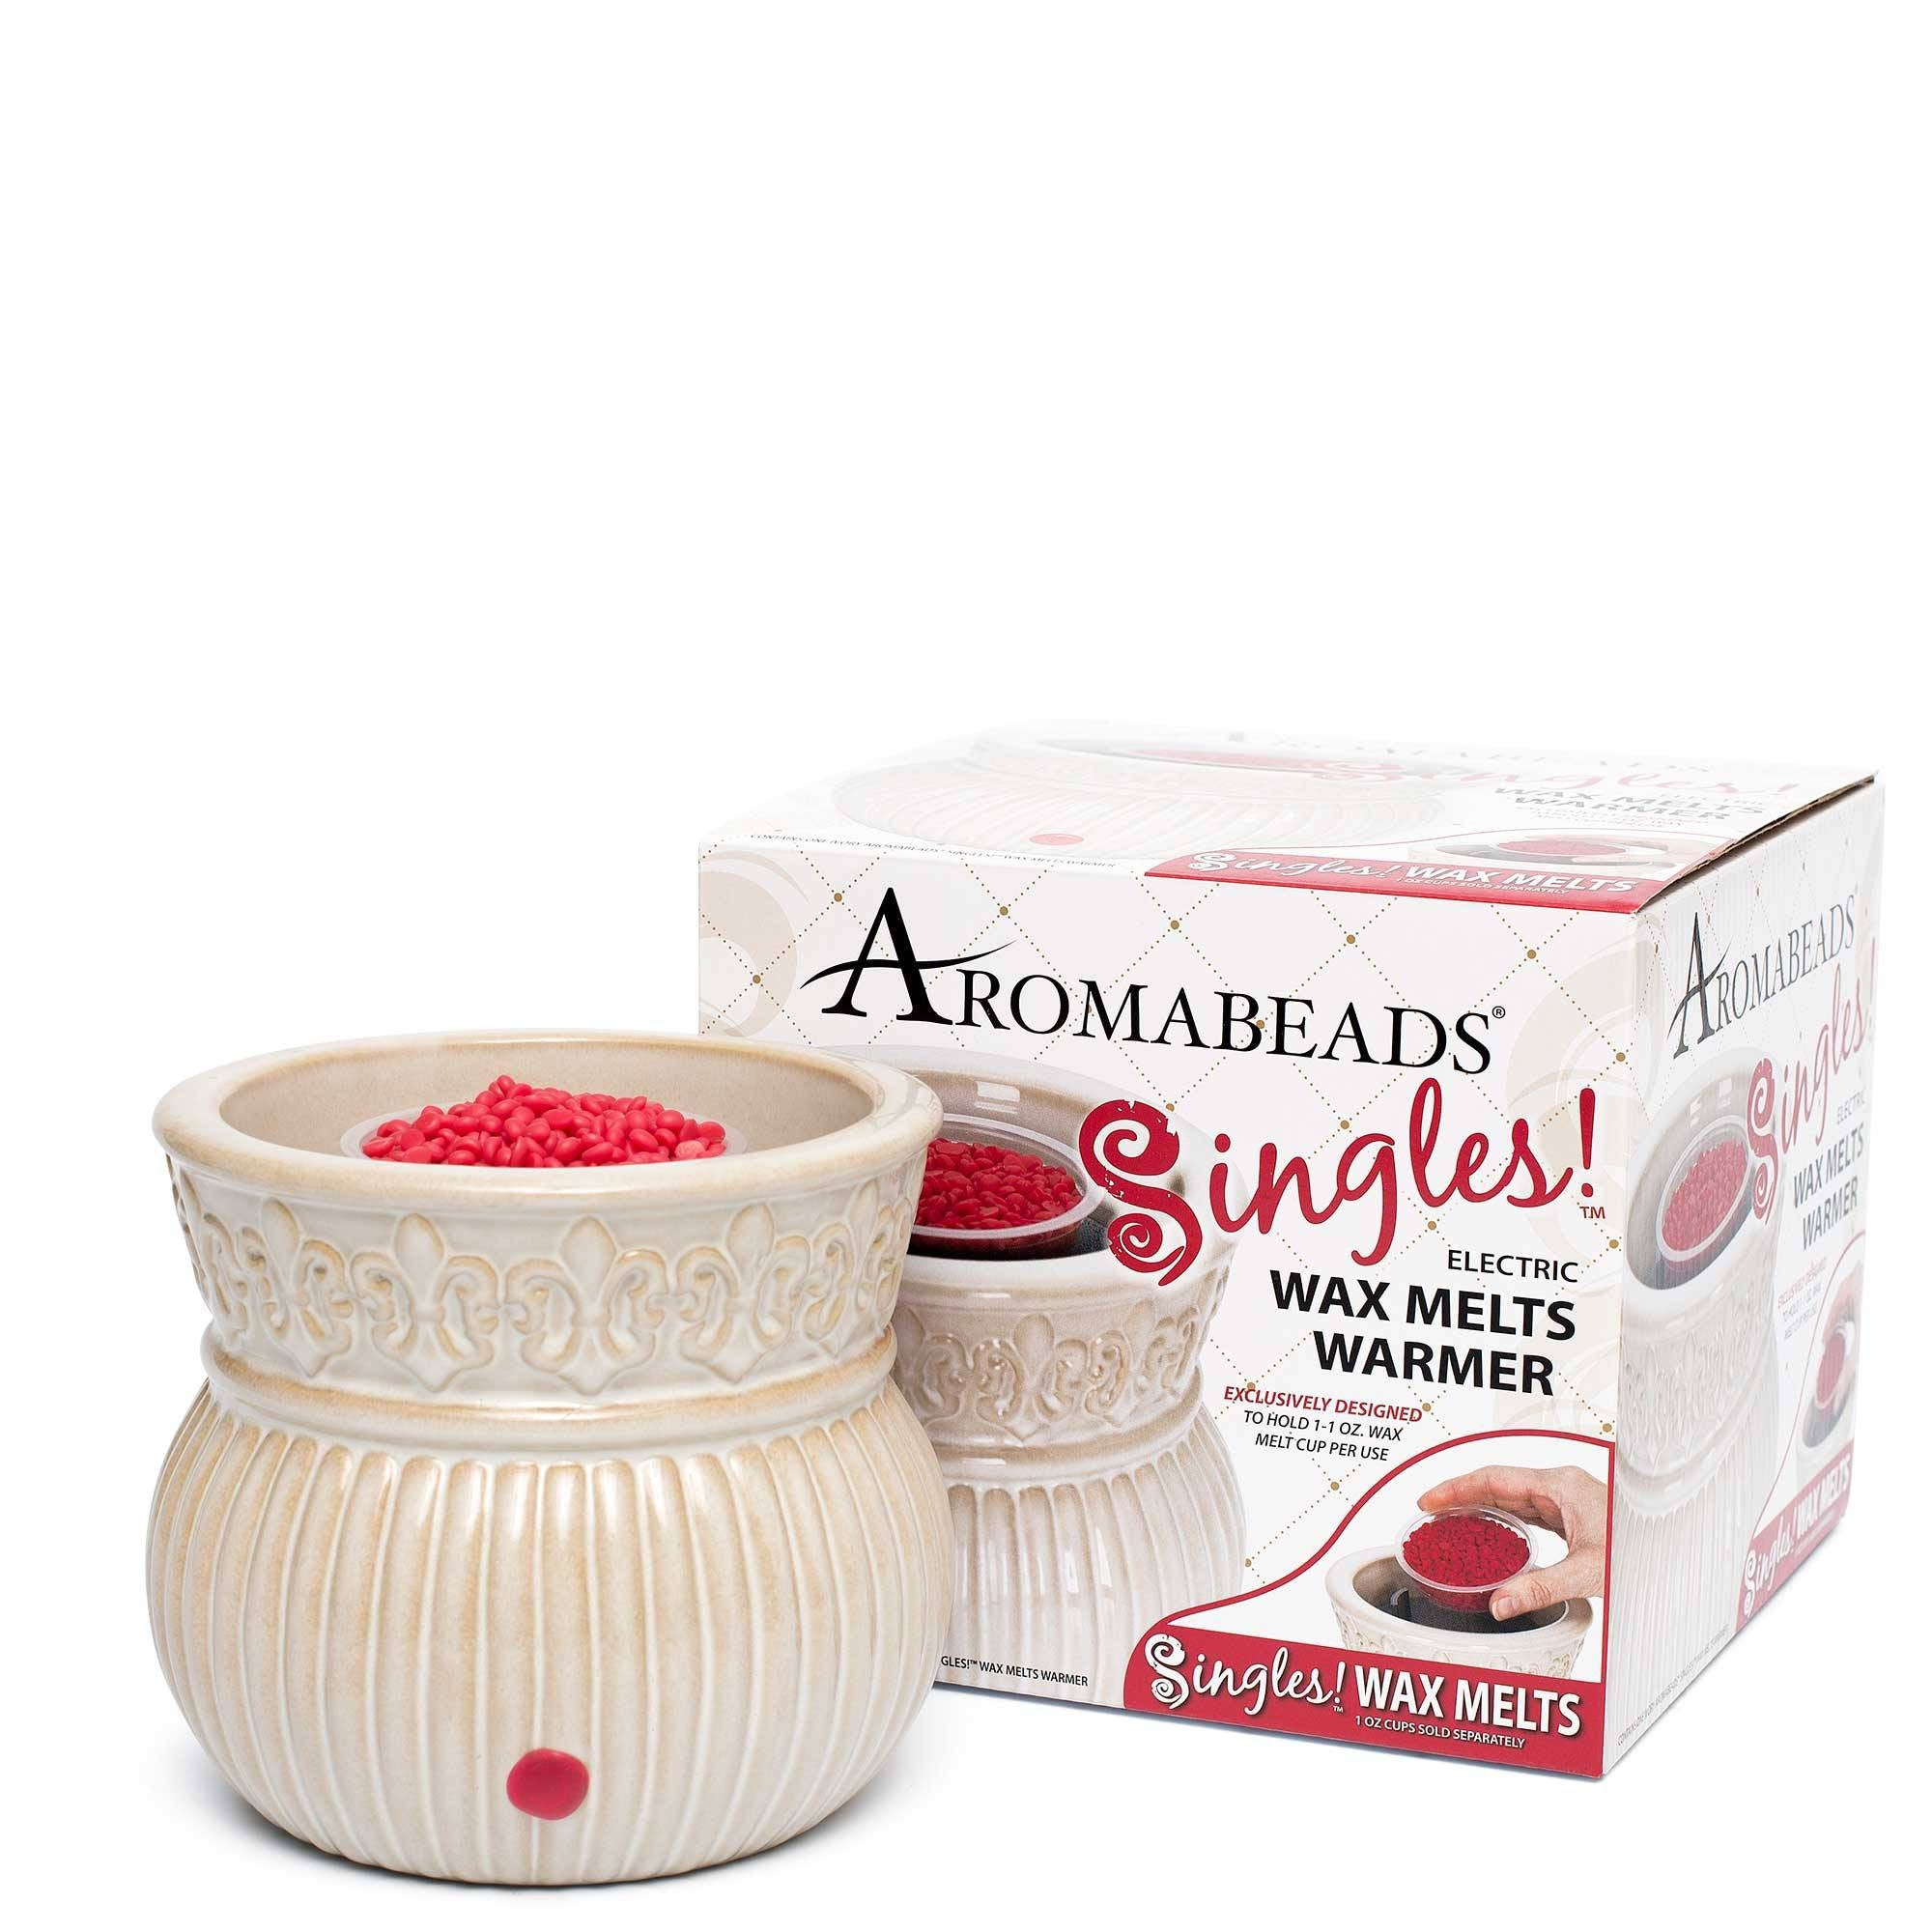 Aromabeads Singles Carmine Rose Scented Wax Melts - Candlemart.com - 3